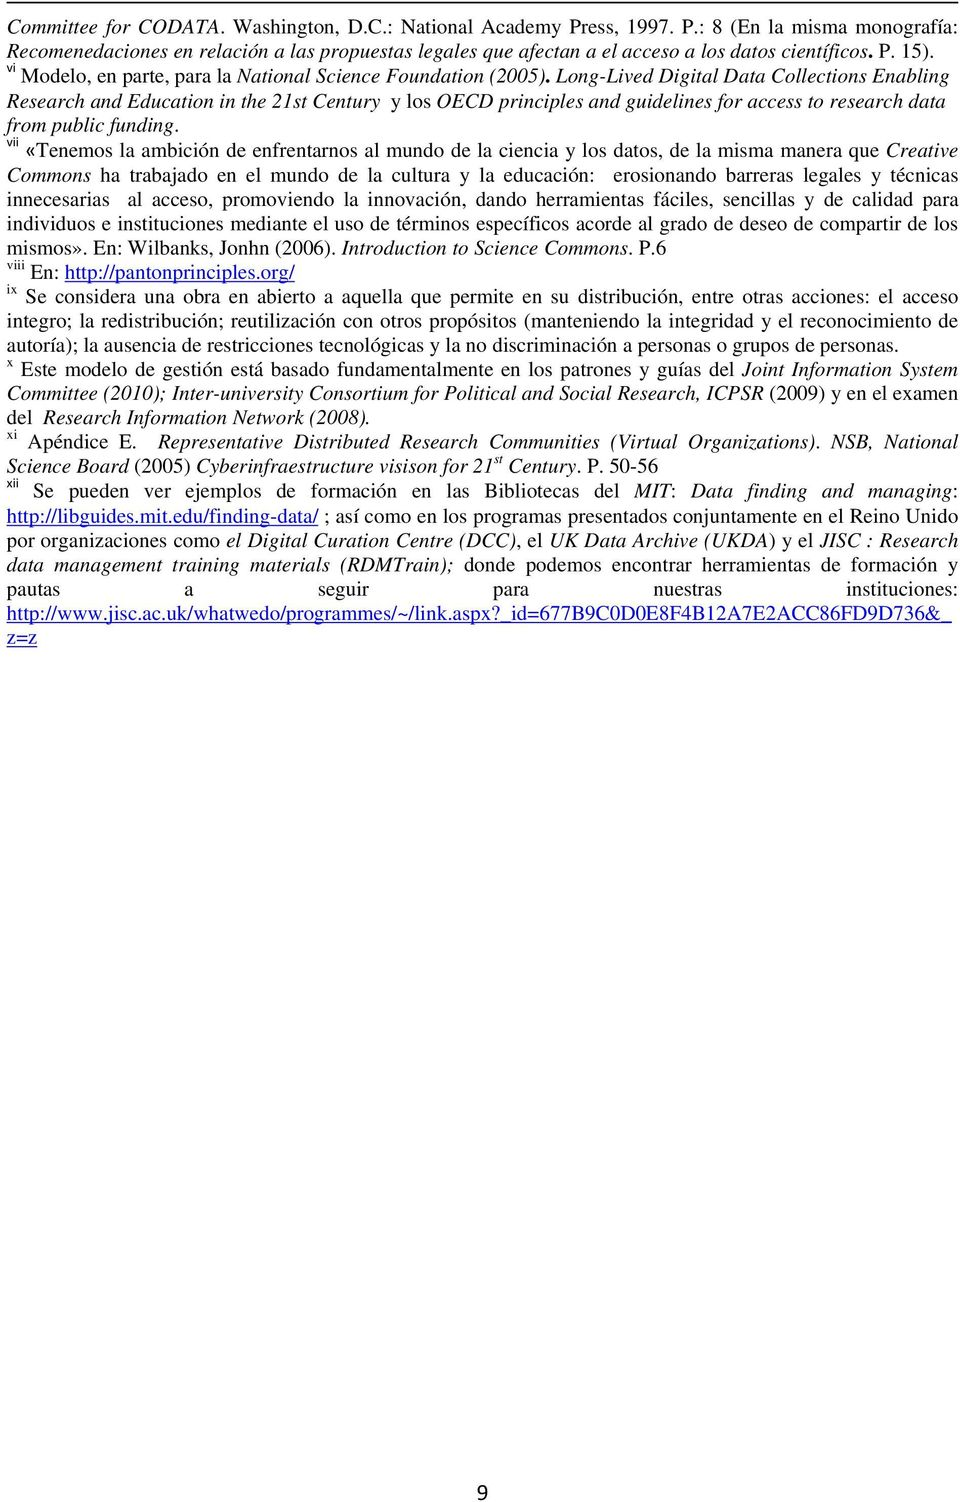 Long-Lived Digital Data Collections Enabling Research and Education in the 21st Century y los OECD principles and guidelines for access to research data from public funding.